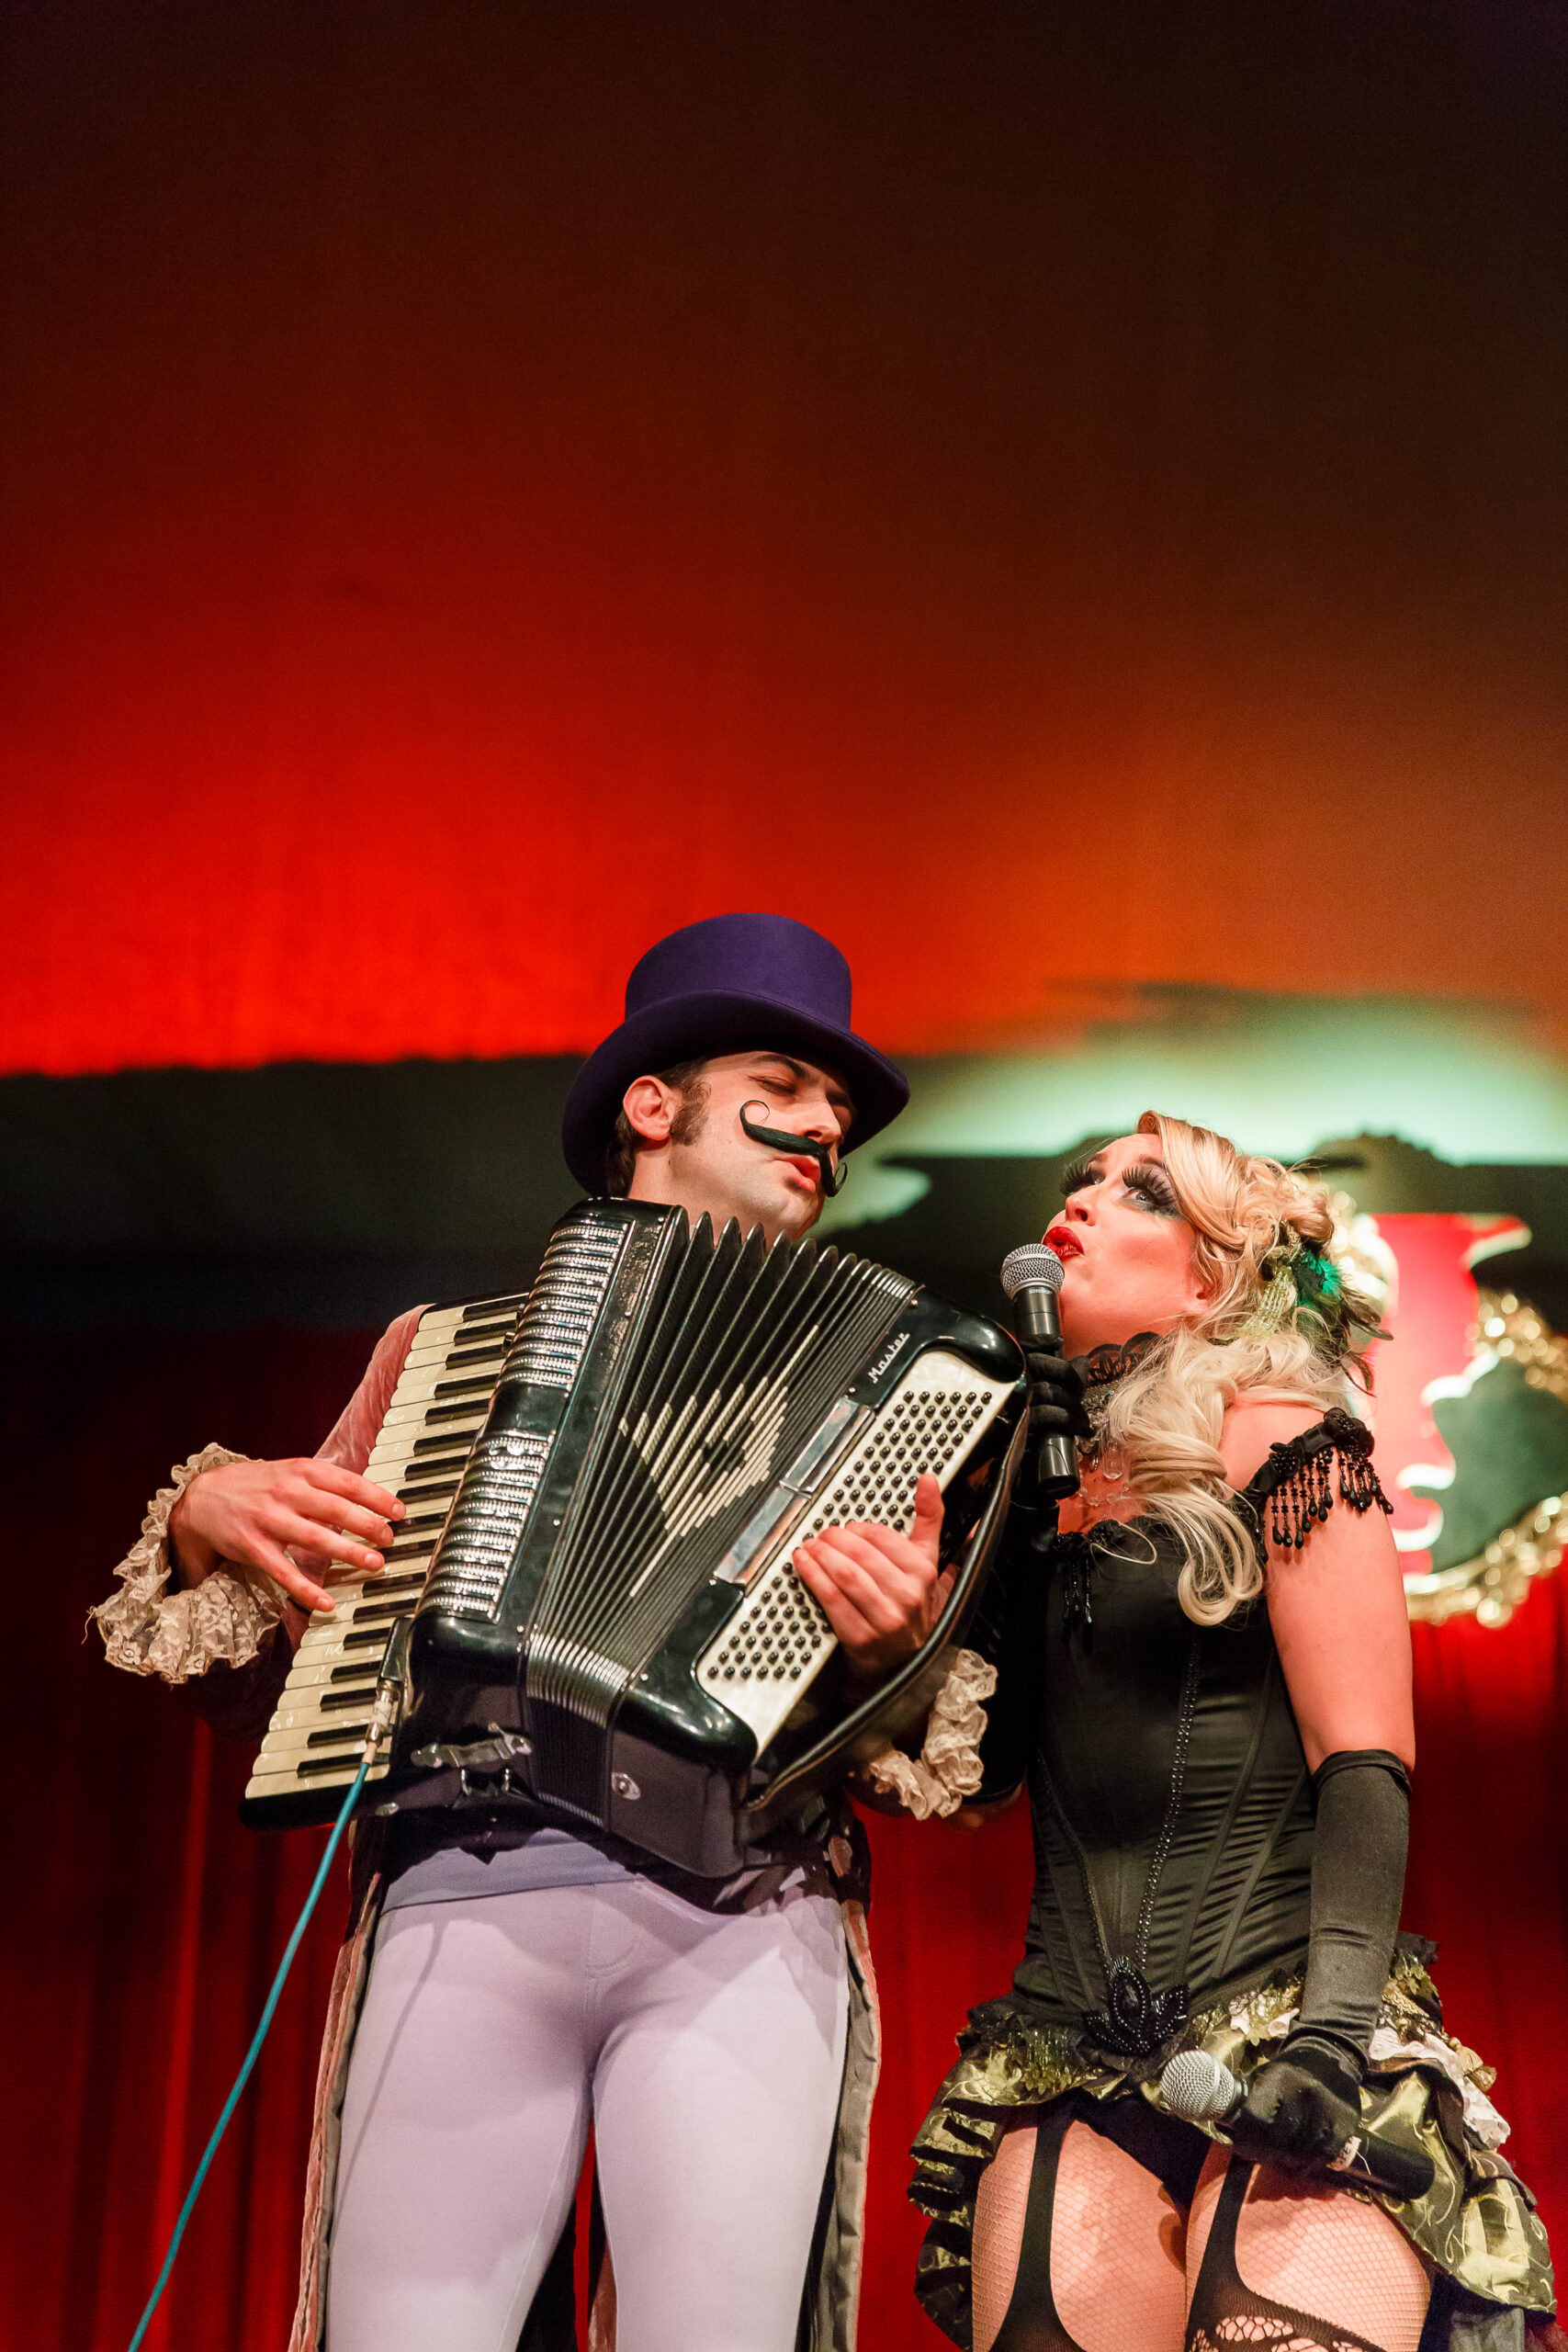 Image of Amelia Van Brunt and Jasper performing at Vau de Vire's The Soiled Dove dinner theater Under the Tortona Big Top in Downtown Oakland